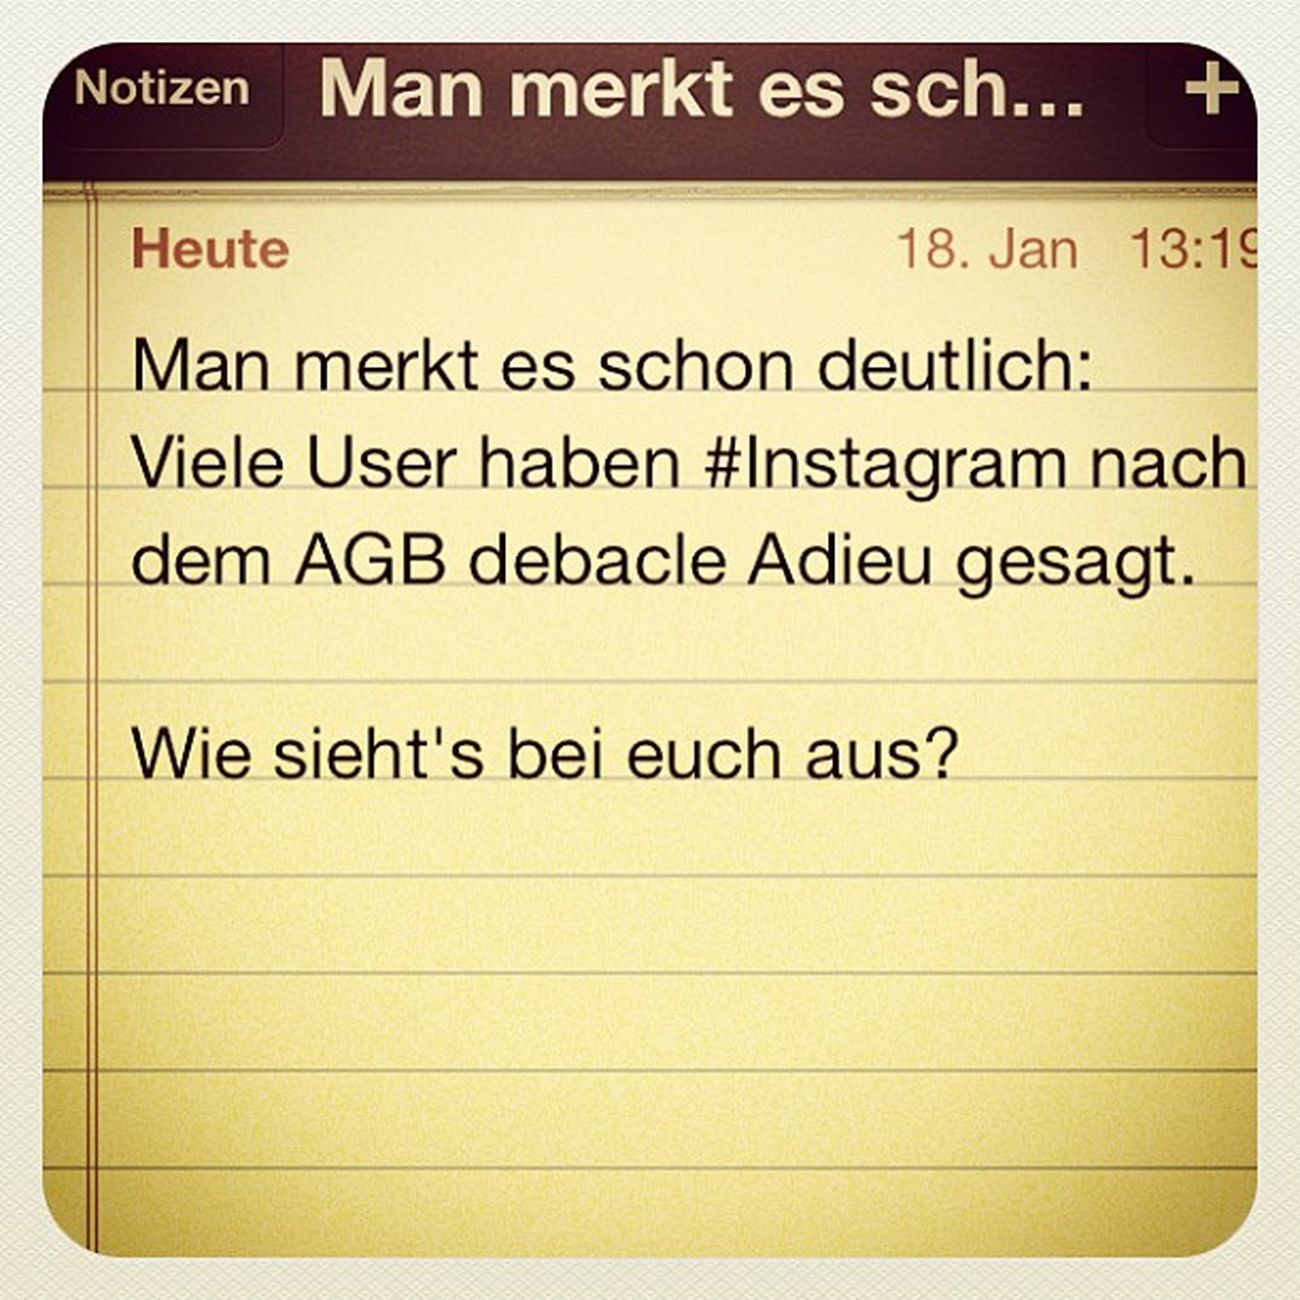 #instagram #agb #debacle #users #missing #conditions #terms Missing Instagram Terms Agb Debacle Users Conditions